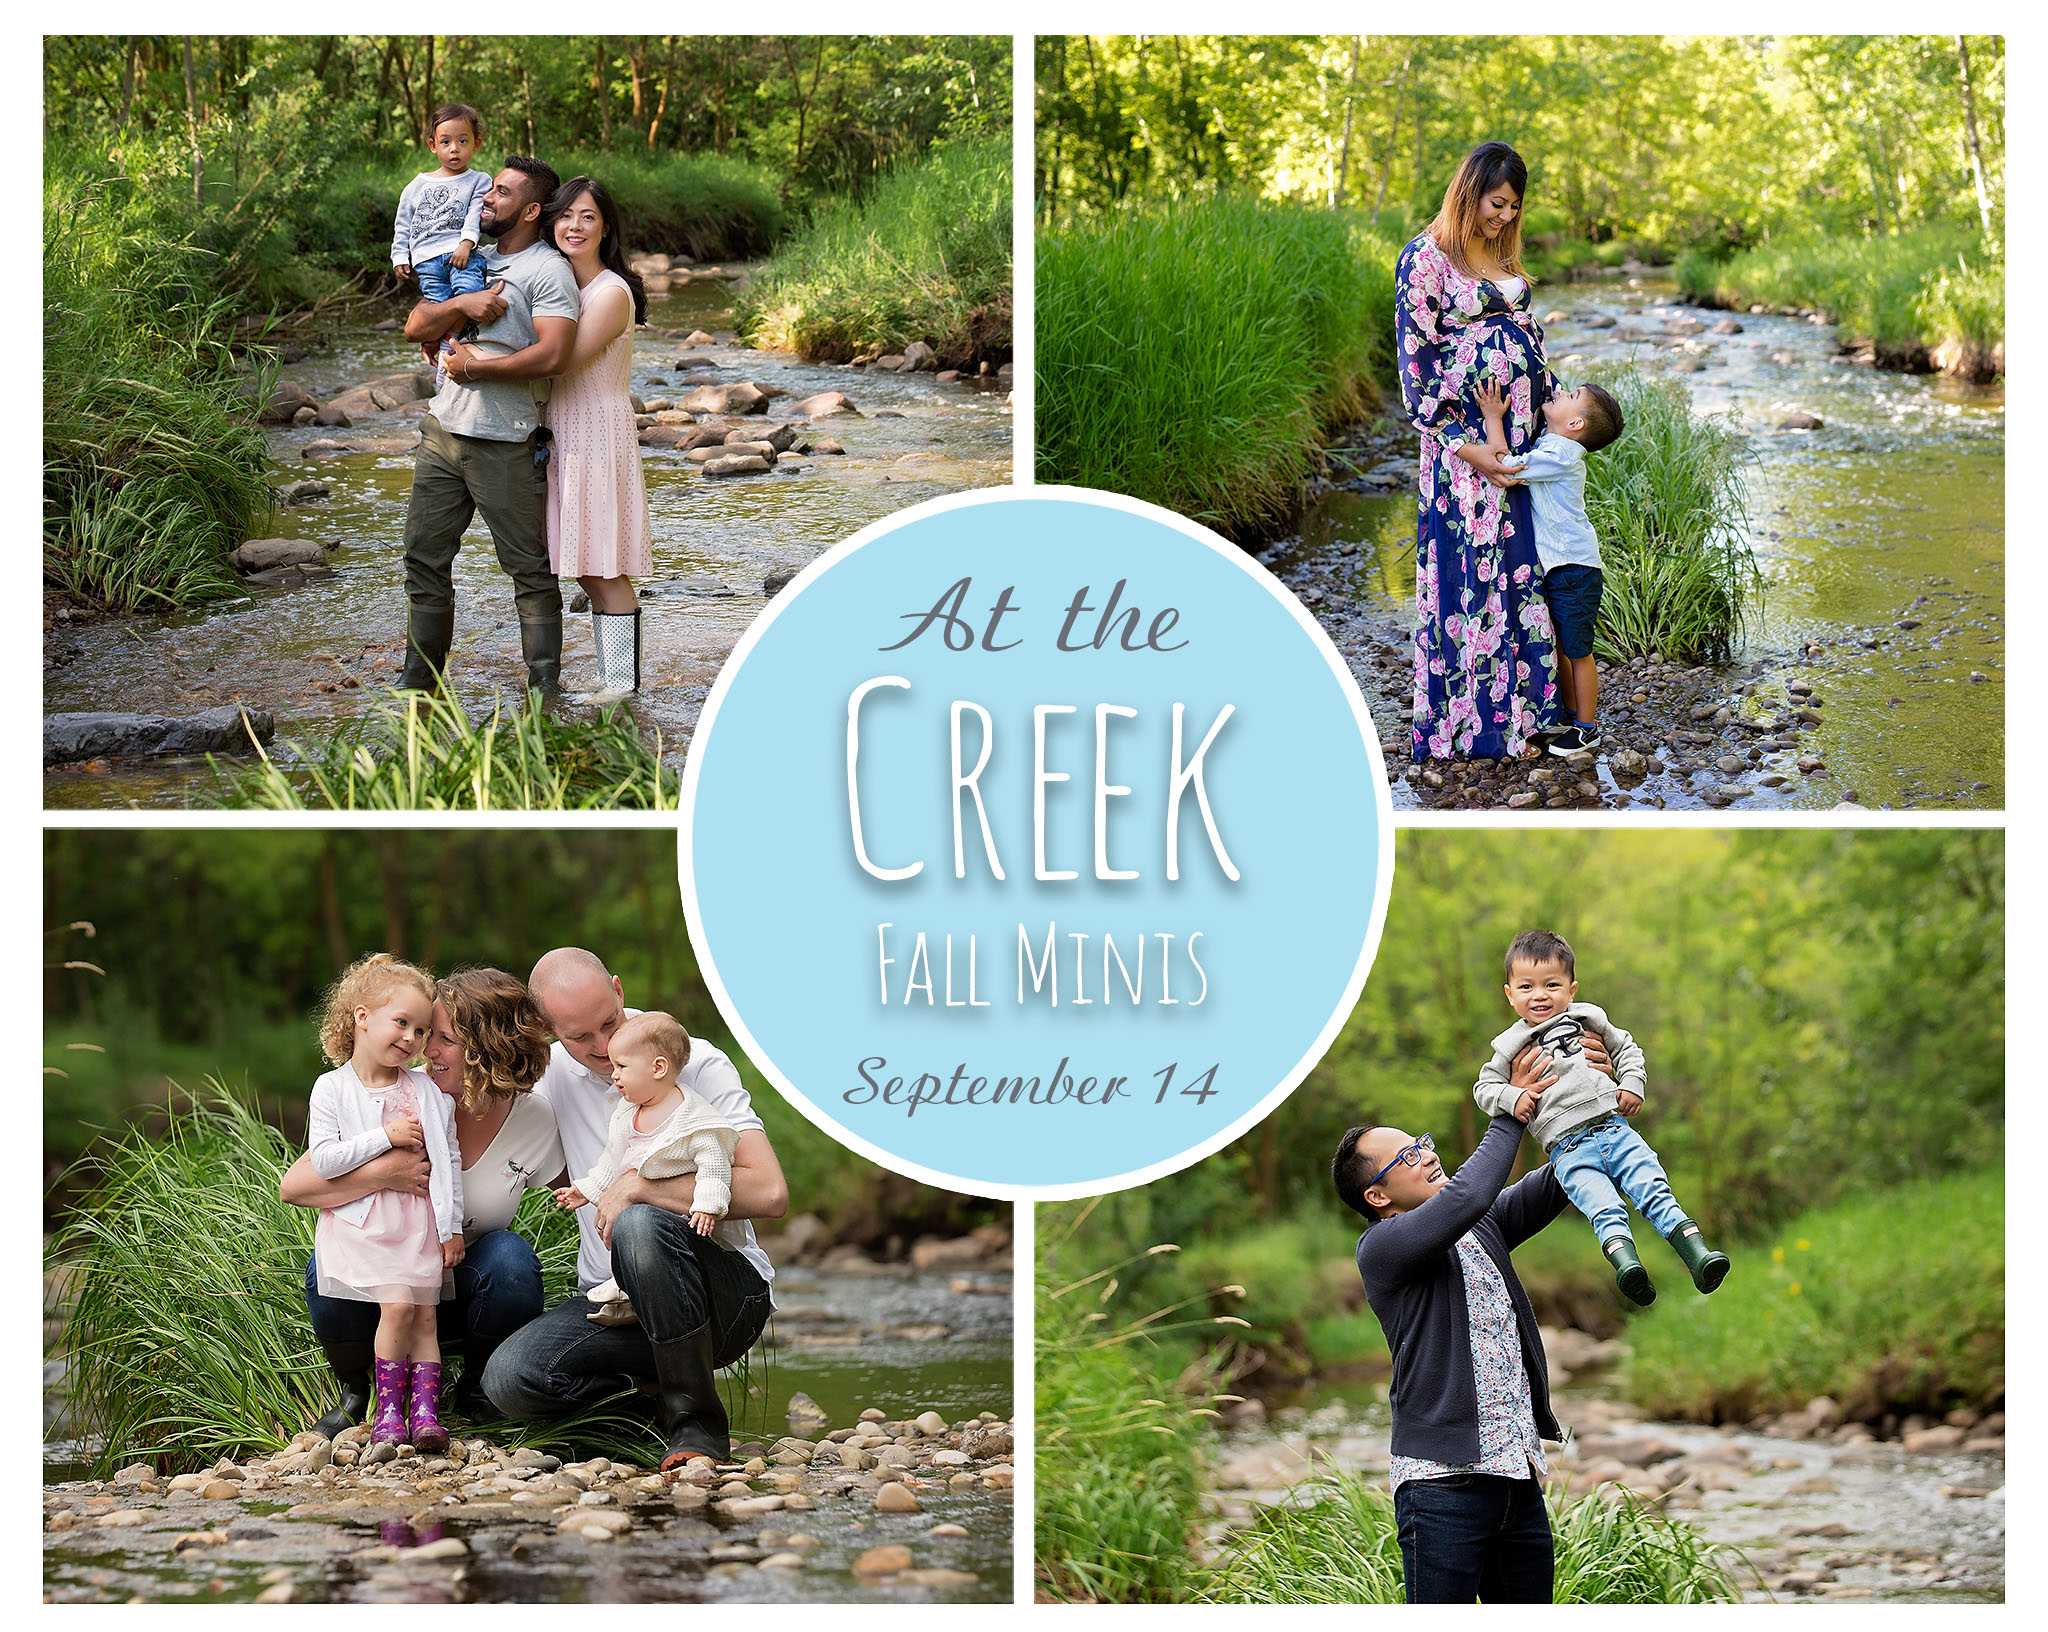 Families in Edmonton pose together in a stream in the Millcreek Ravine.